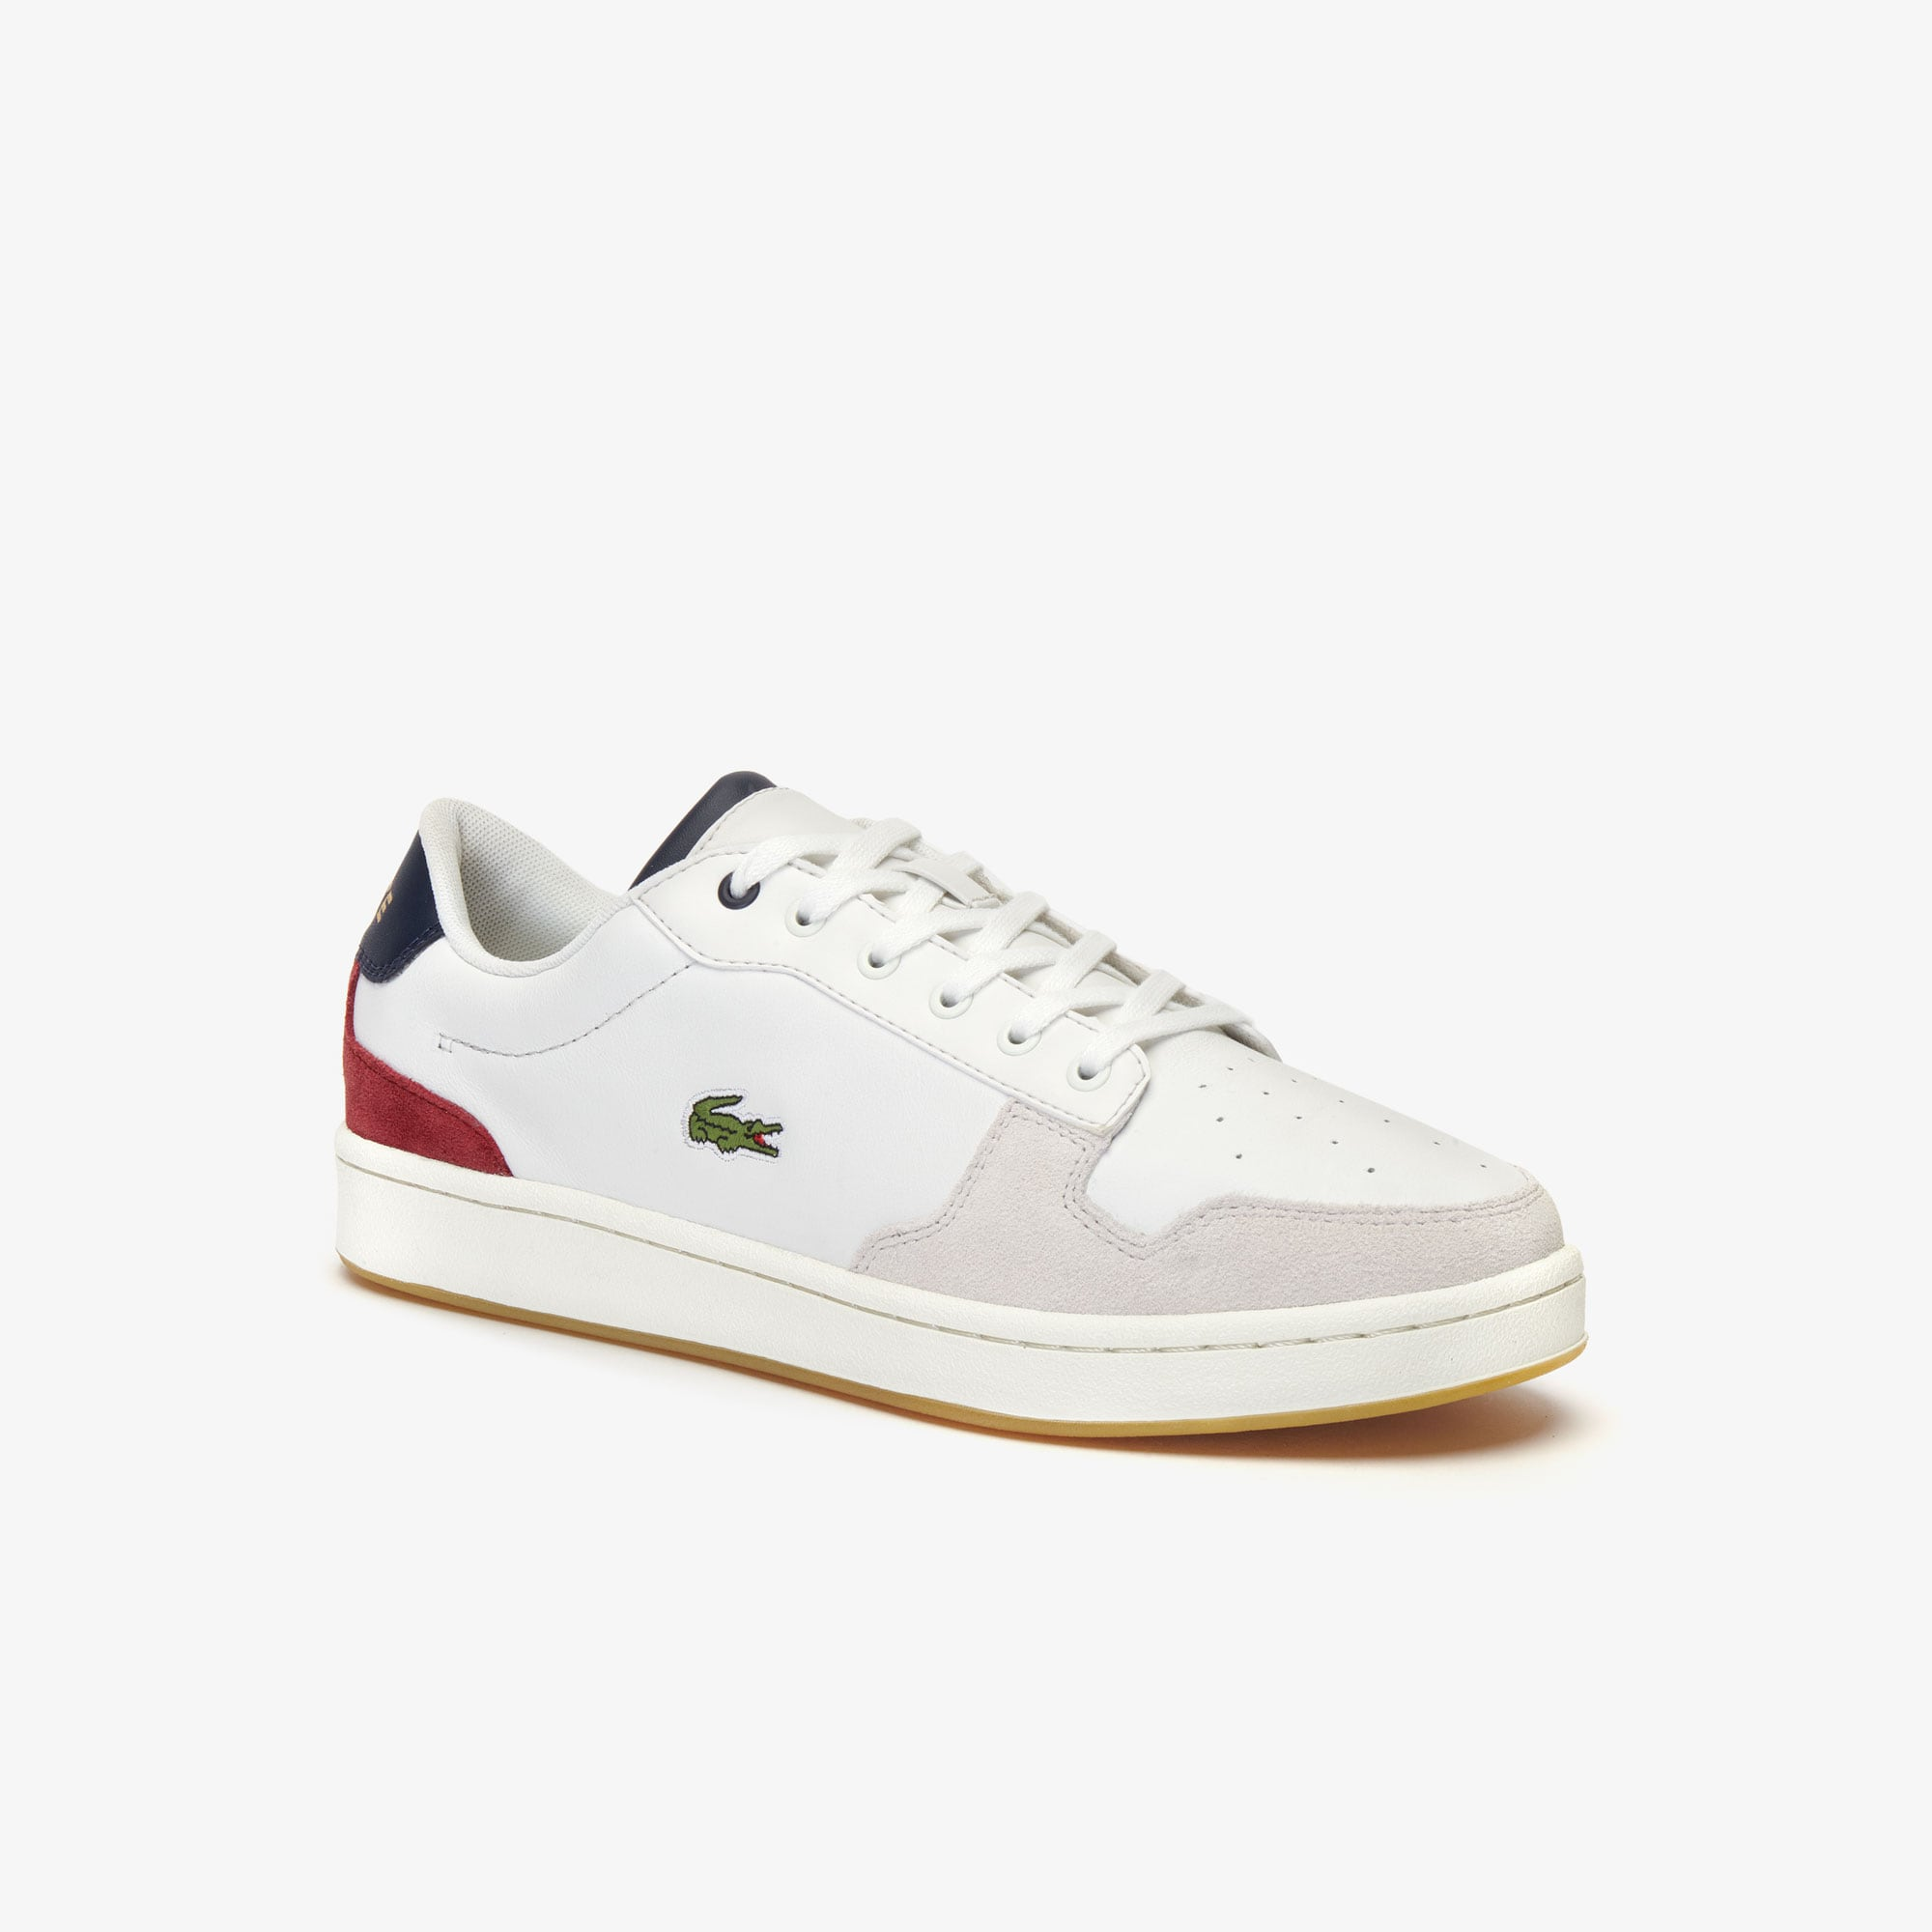 chaussures lacoste taille 47 homme,chaussure lacoste foot